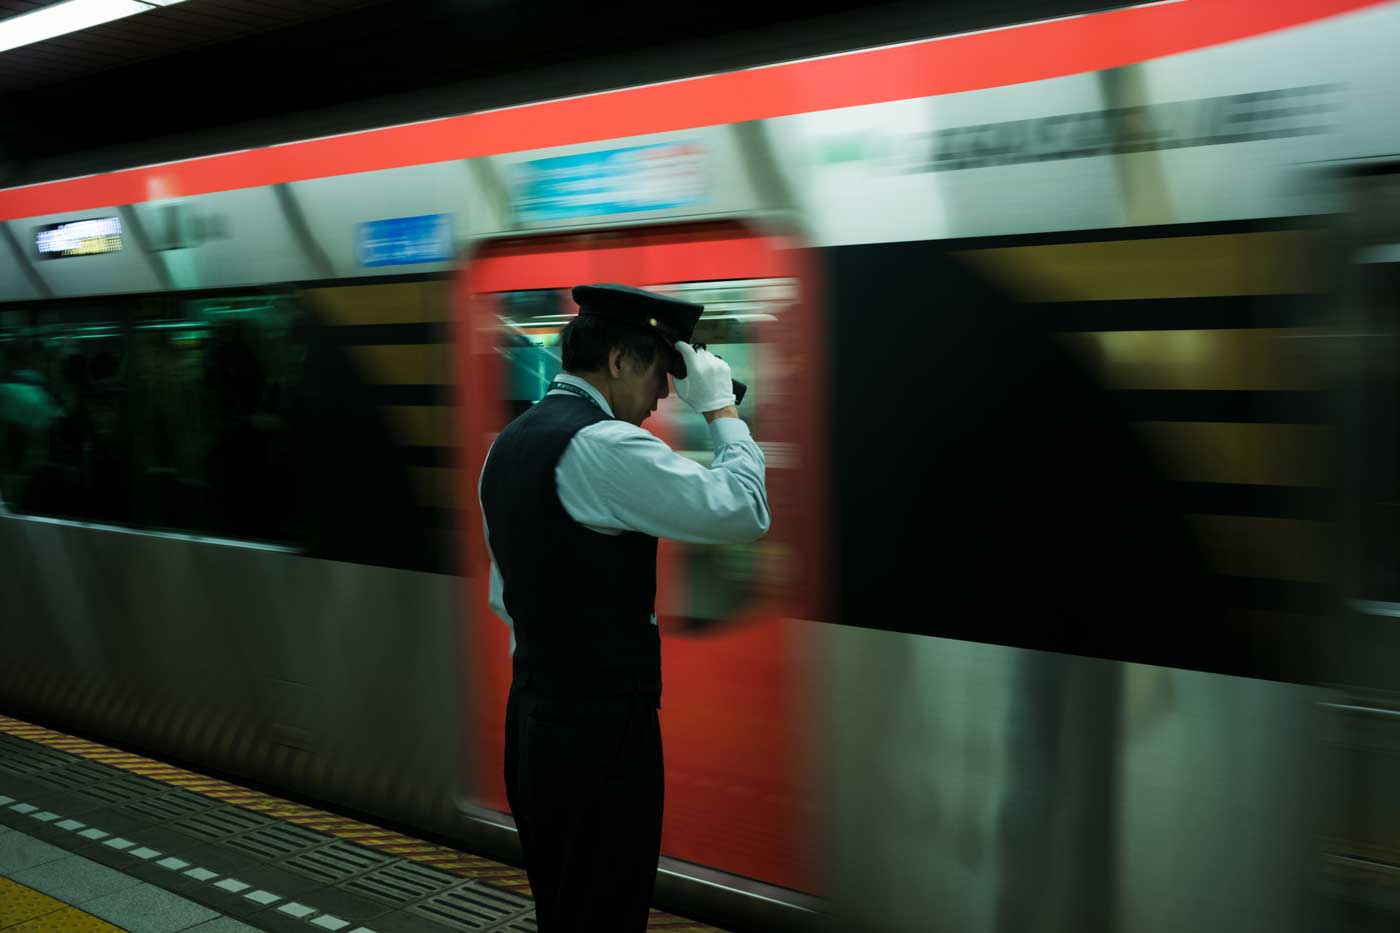 tokyo-2019-trip-japan-summilux-11663-FLE-35mm-f1.4-asph-leica-m10-digital-rangefinder-bw-mood-travel-blog-journal-train-conductor-salute-moving-train-platform